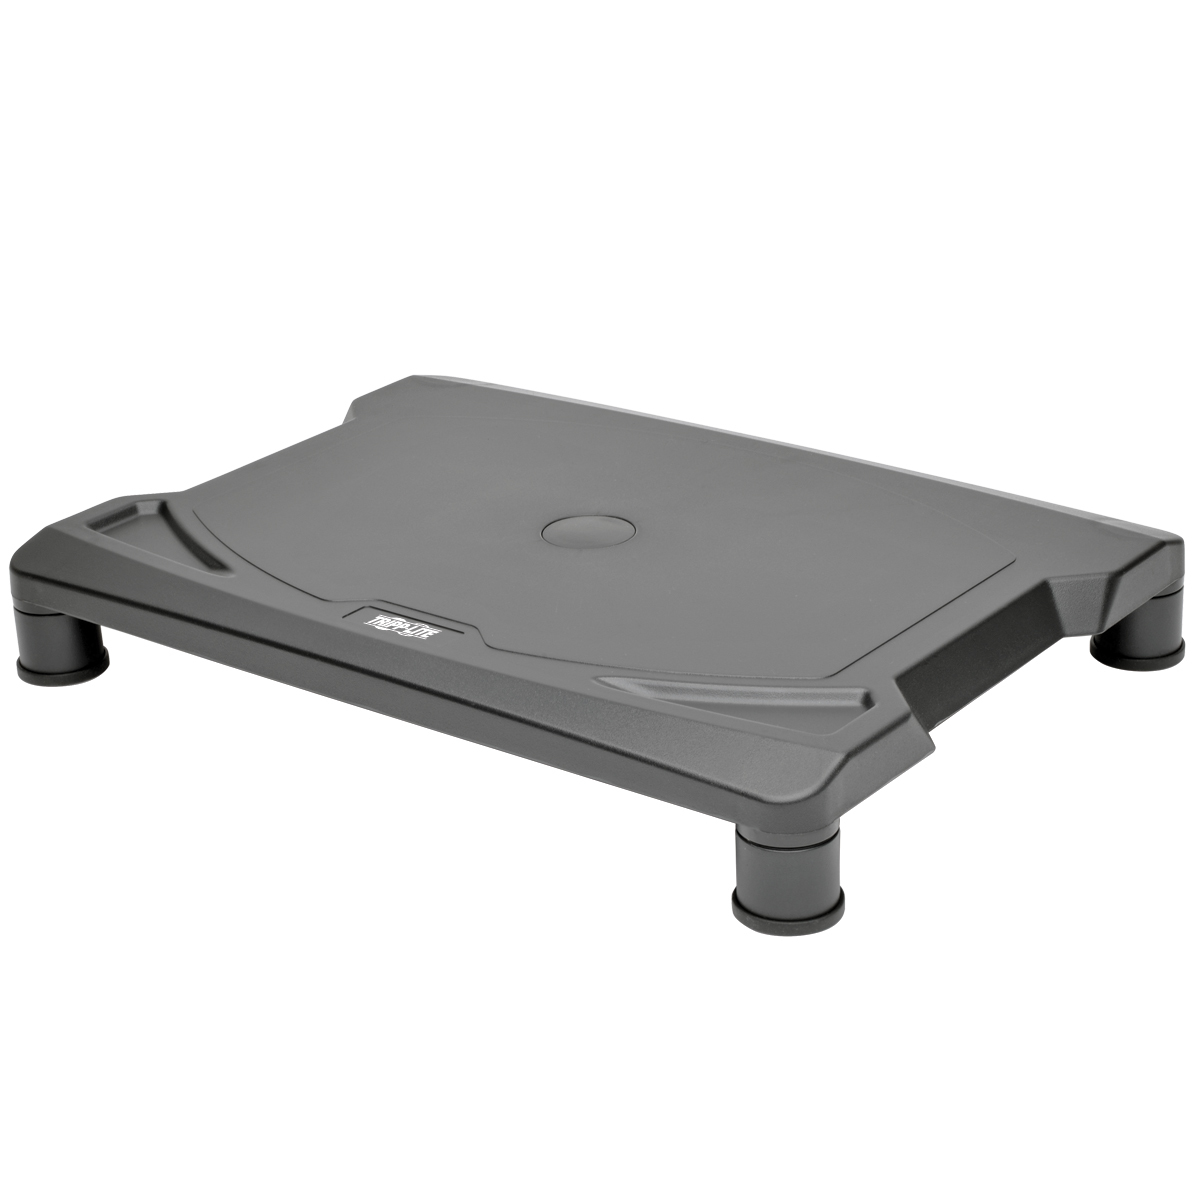 Tripp Lite Universal Monitor Riser Stand for Computers Laptops Printers